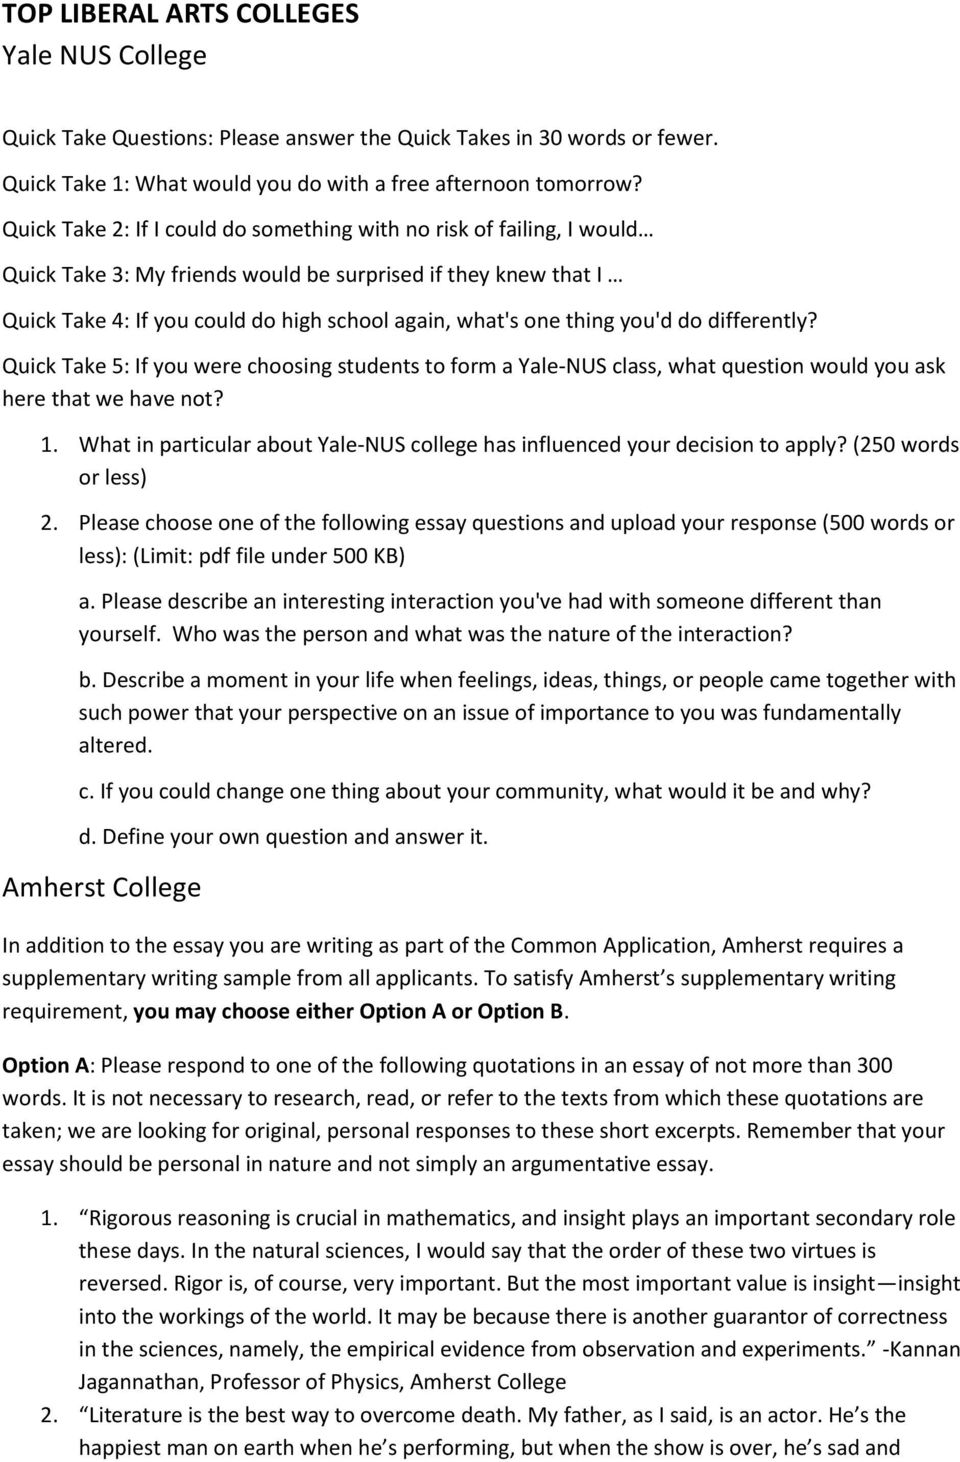 English Essays Topics High School Entrance Essays High School Scholarship Essay Examples Diamond  Geo Engineering Services How To Write Synthesis Essays also English Learning Essay My Daily School Activities Essay Example College Application  What Is A Thesis Statement In A Essay